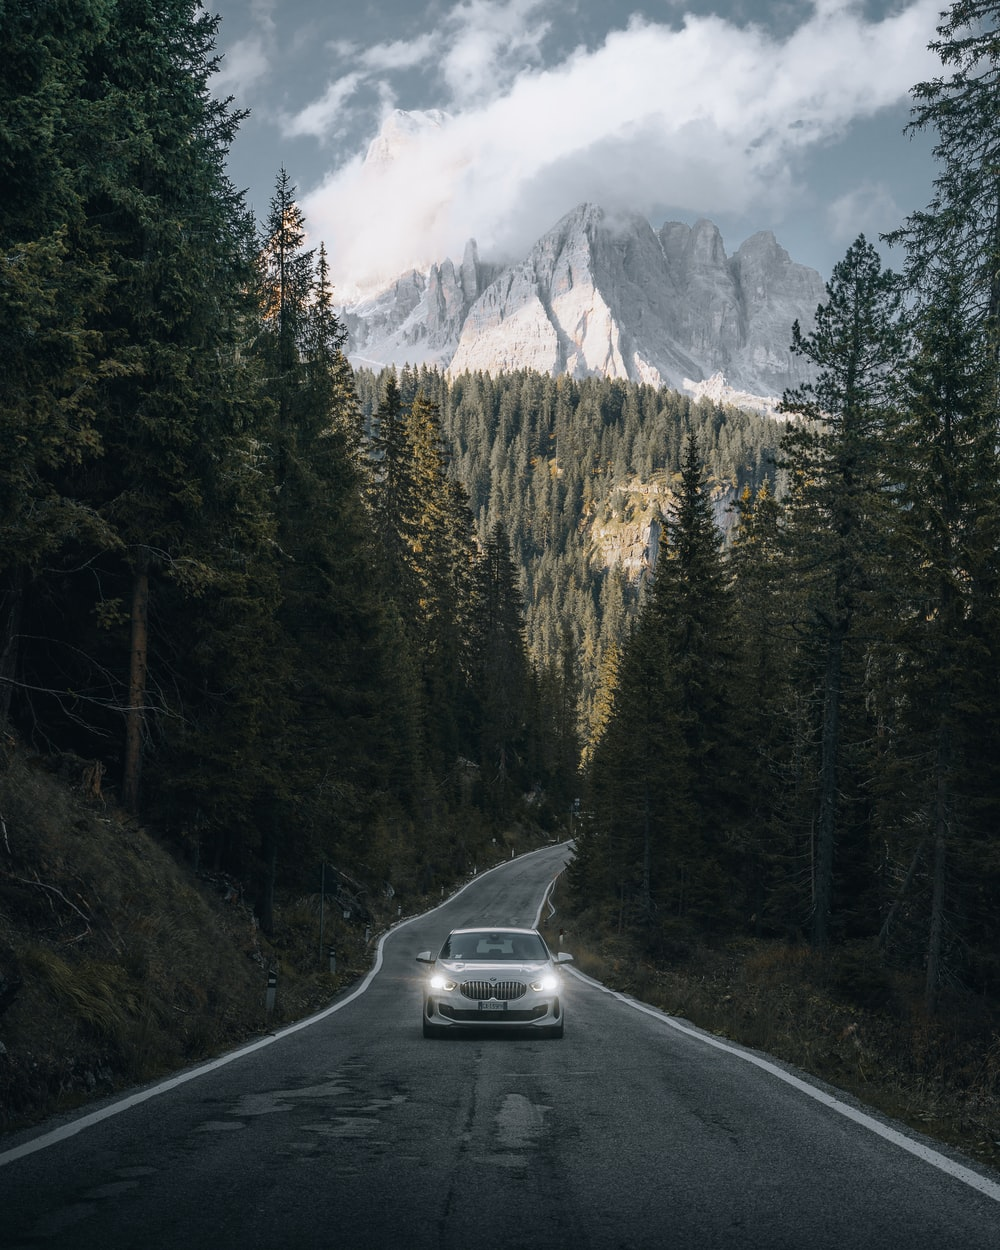 black car on road near green trees and snow covered mountain during daytime